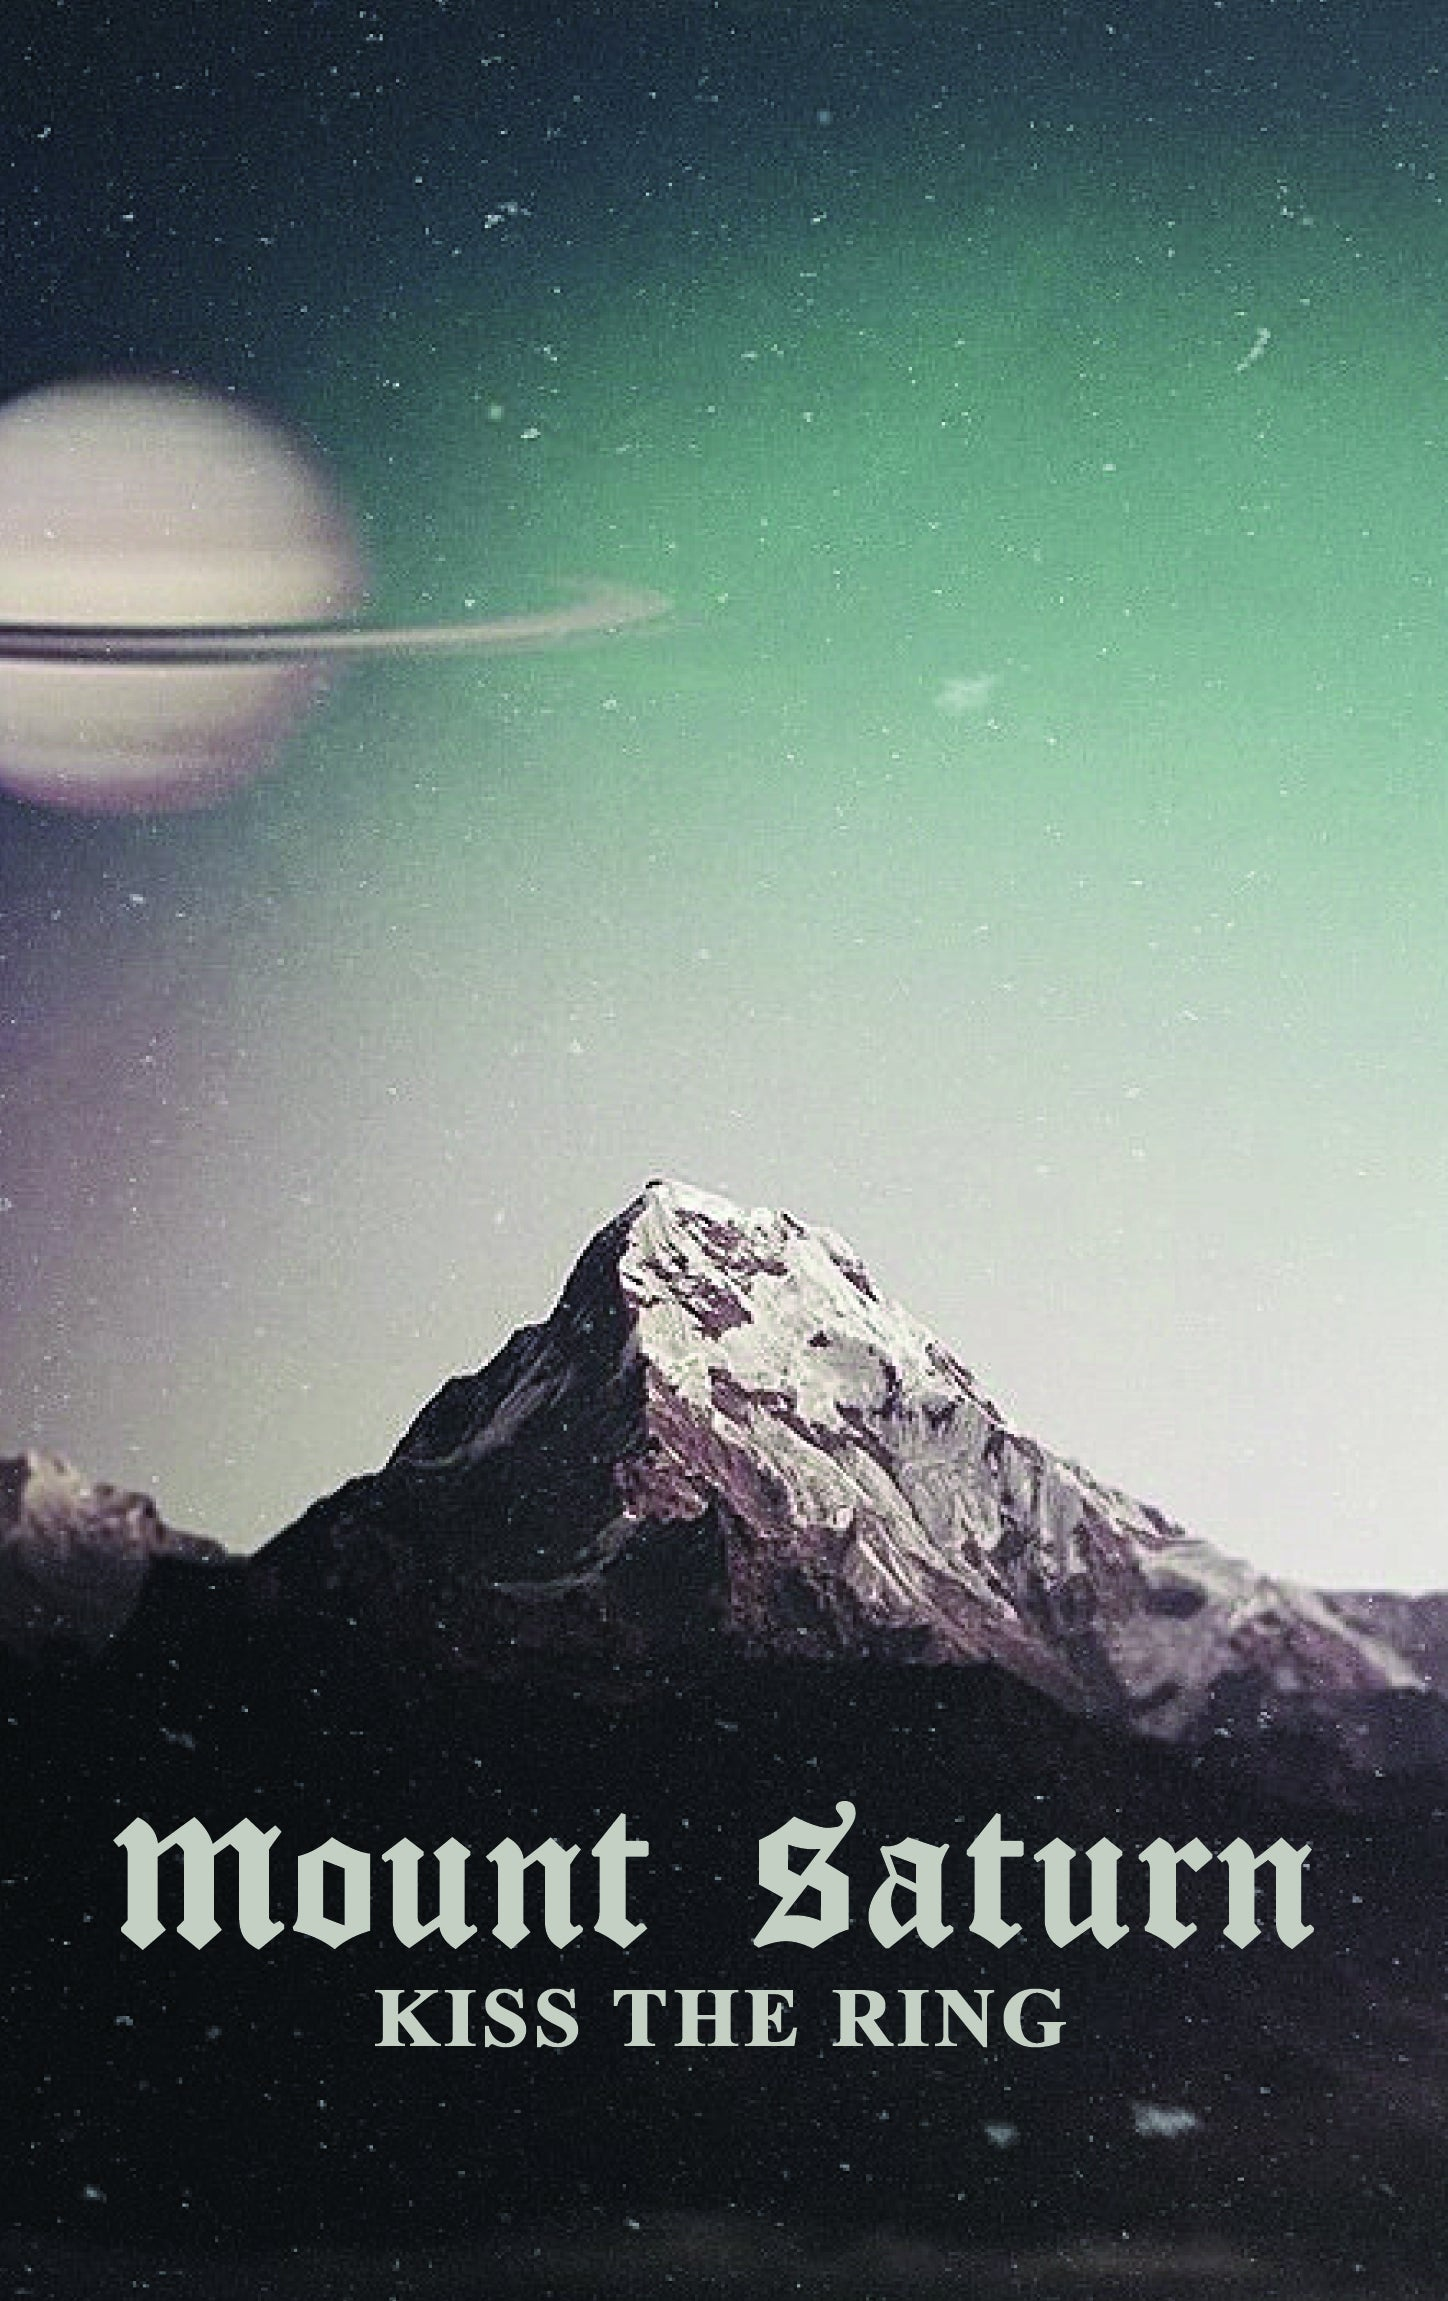 Image of Mount Saturn Kiss the Ring EP Cassette